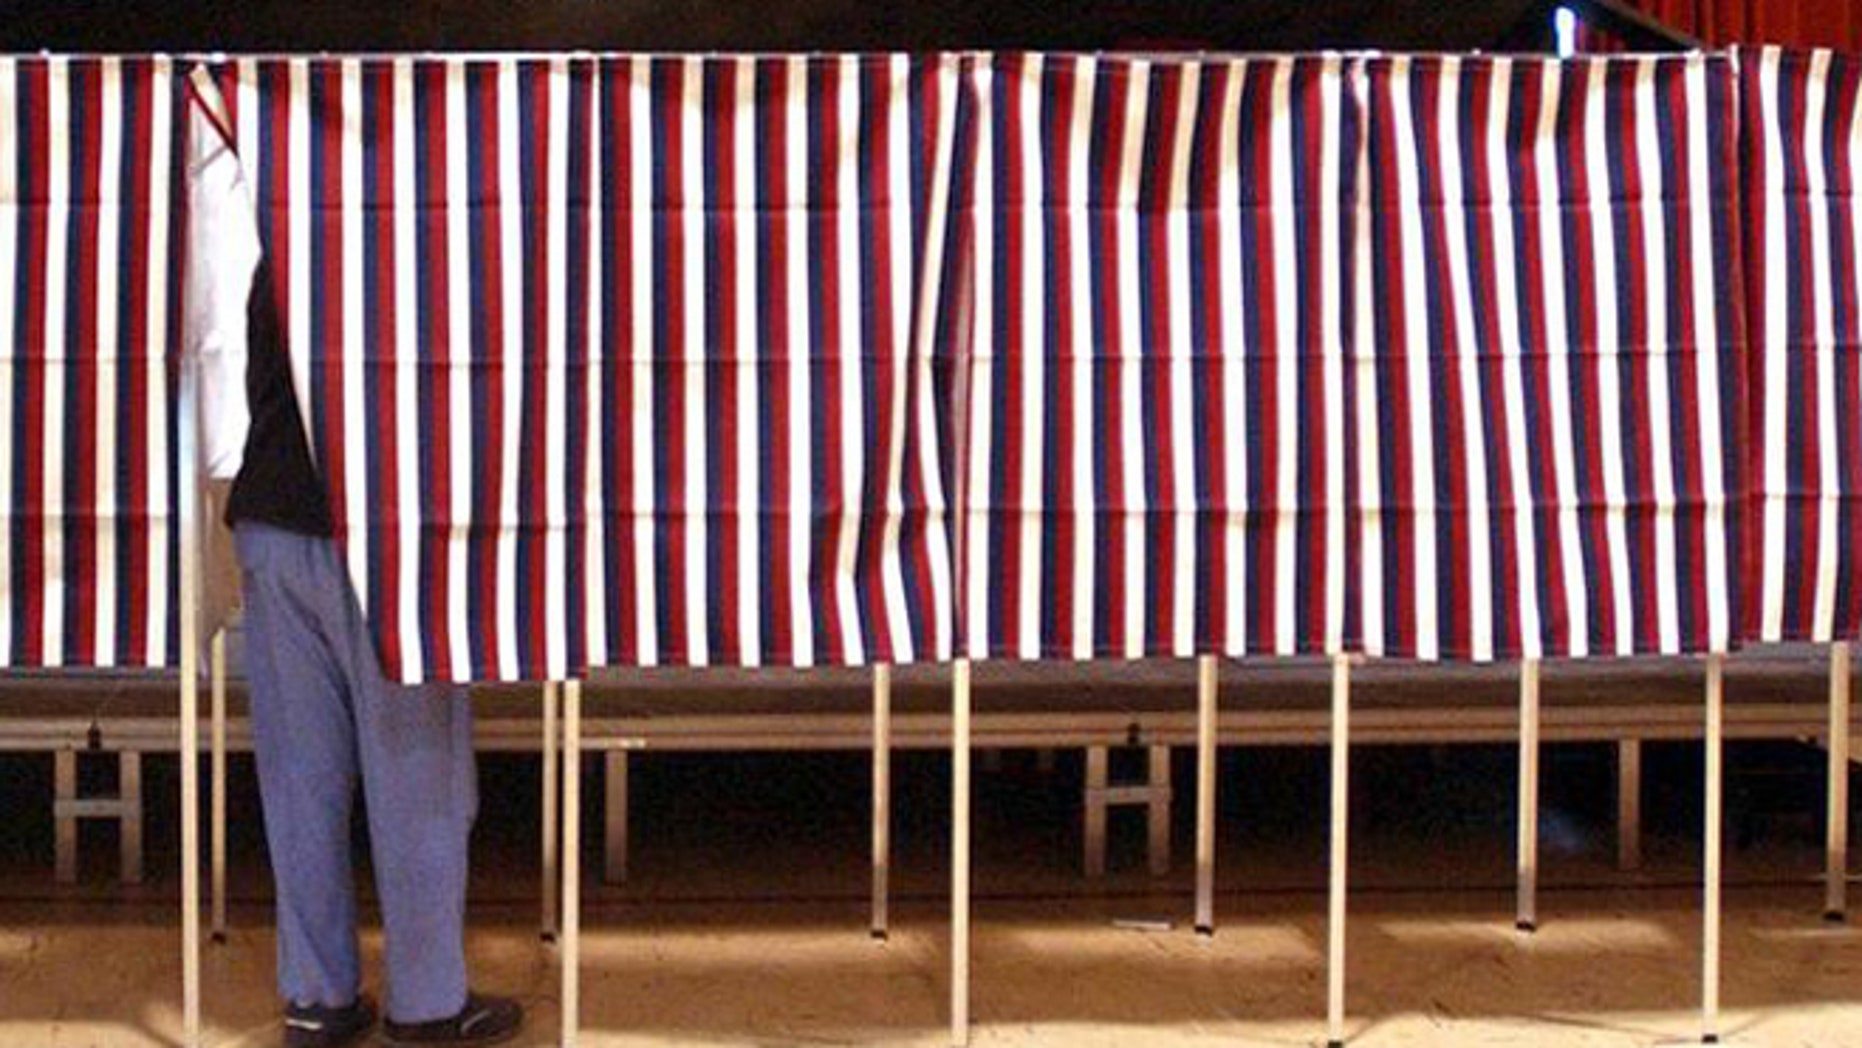 FILE: Feb. 2004: Voter in voting booth during Super Tuesday primary, Montpellier, Vt.